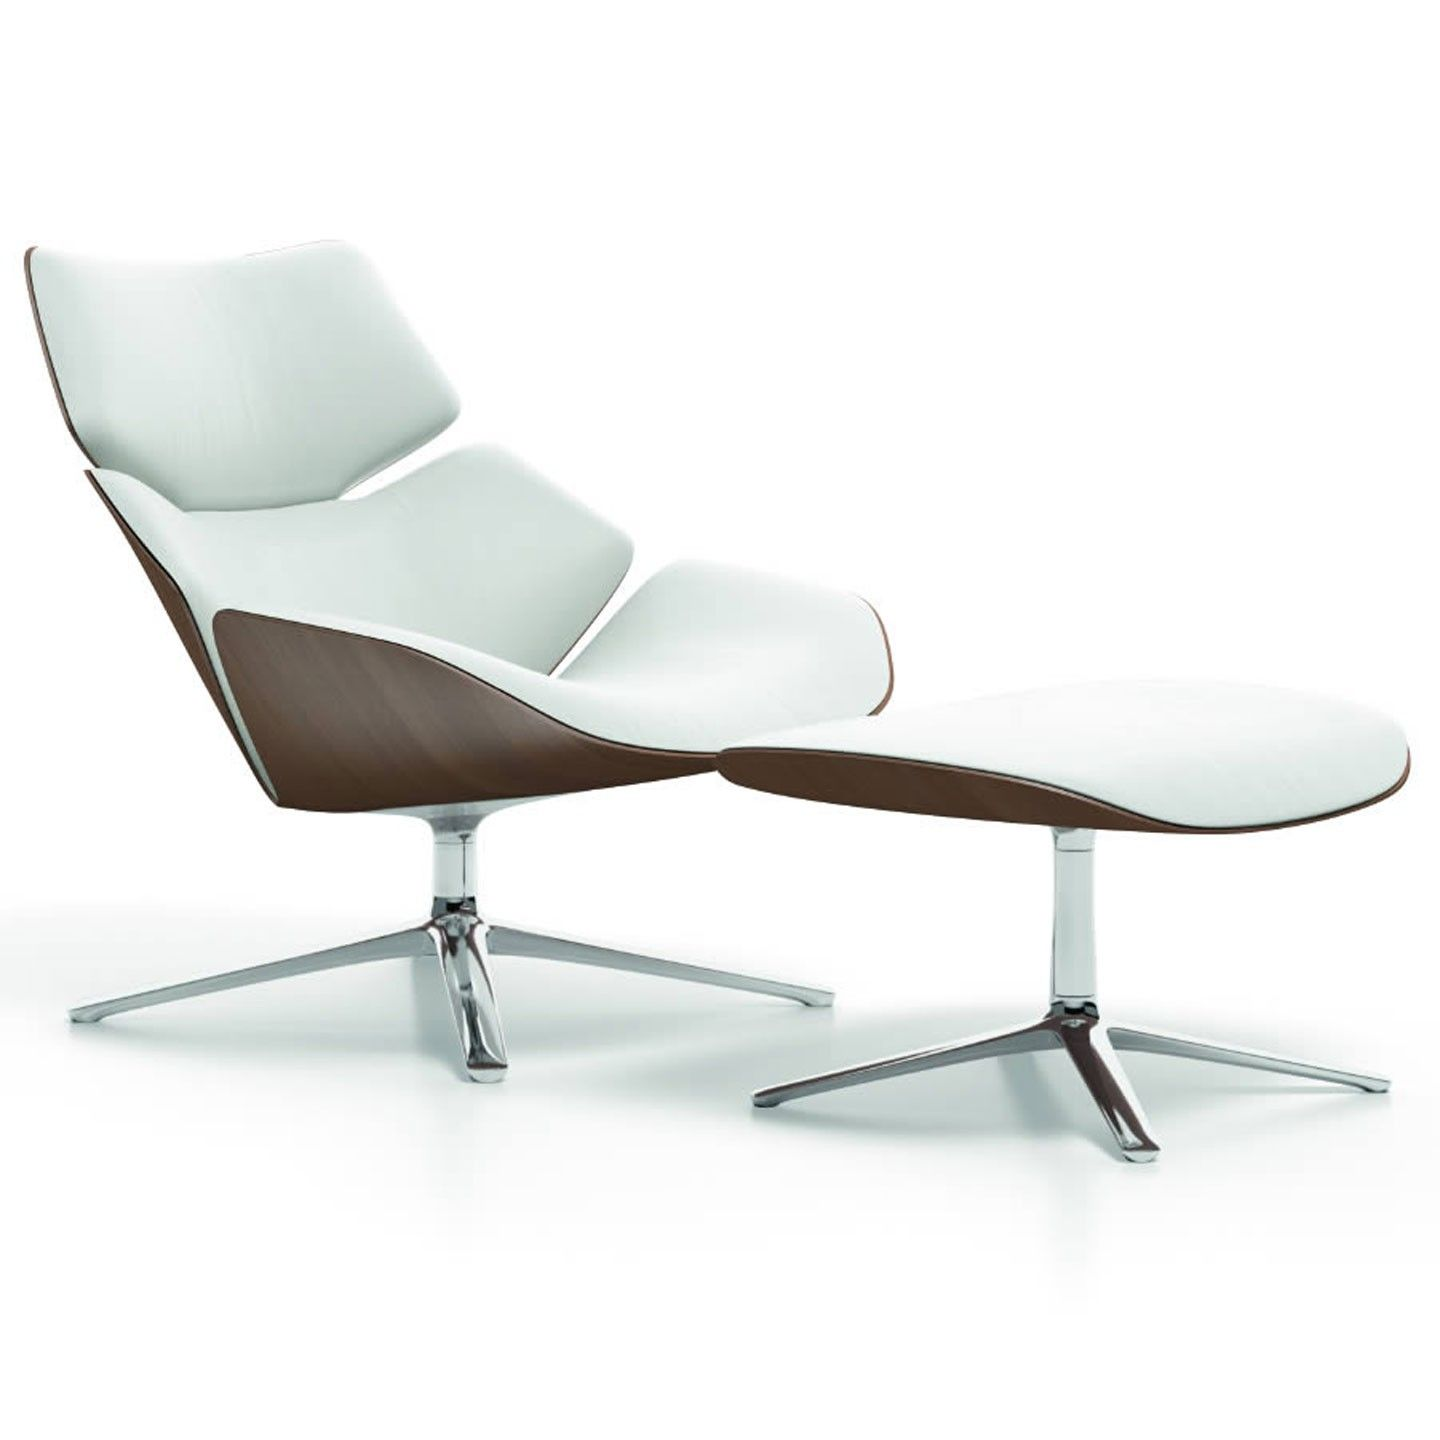 Shrimp lounge chair jehs laub cor sitzm bel for Replica mobili design